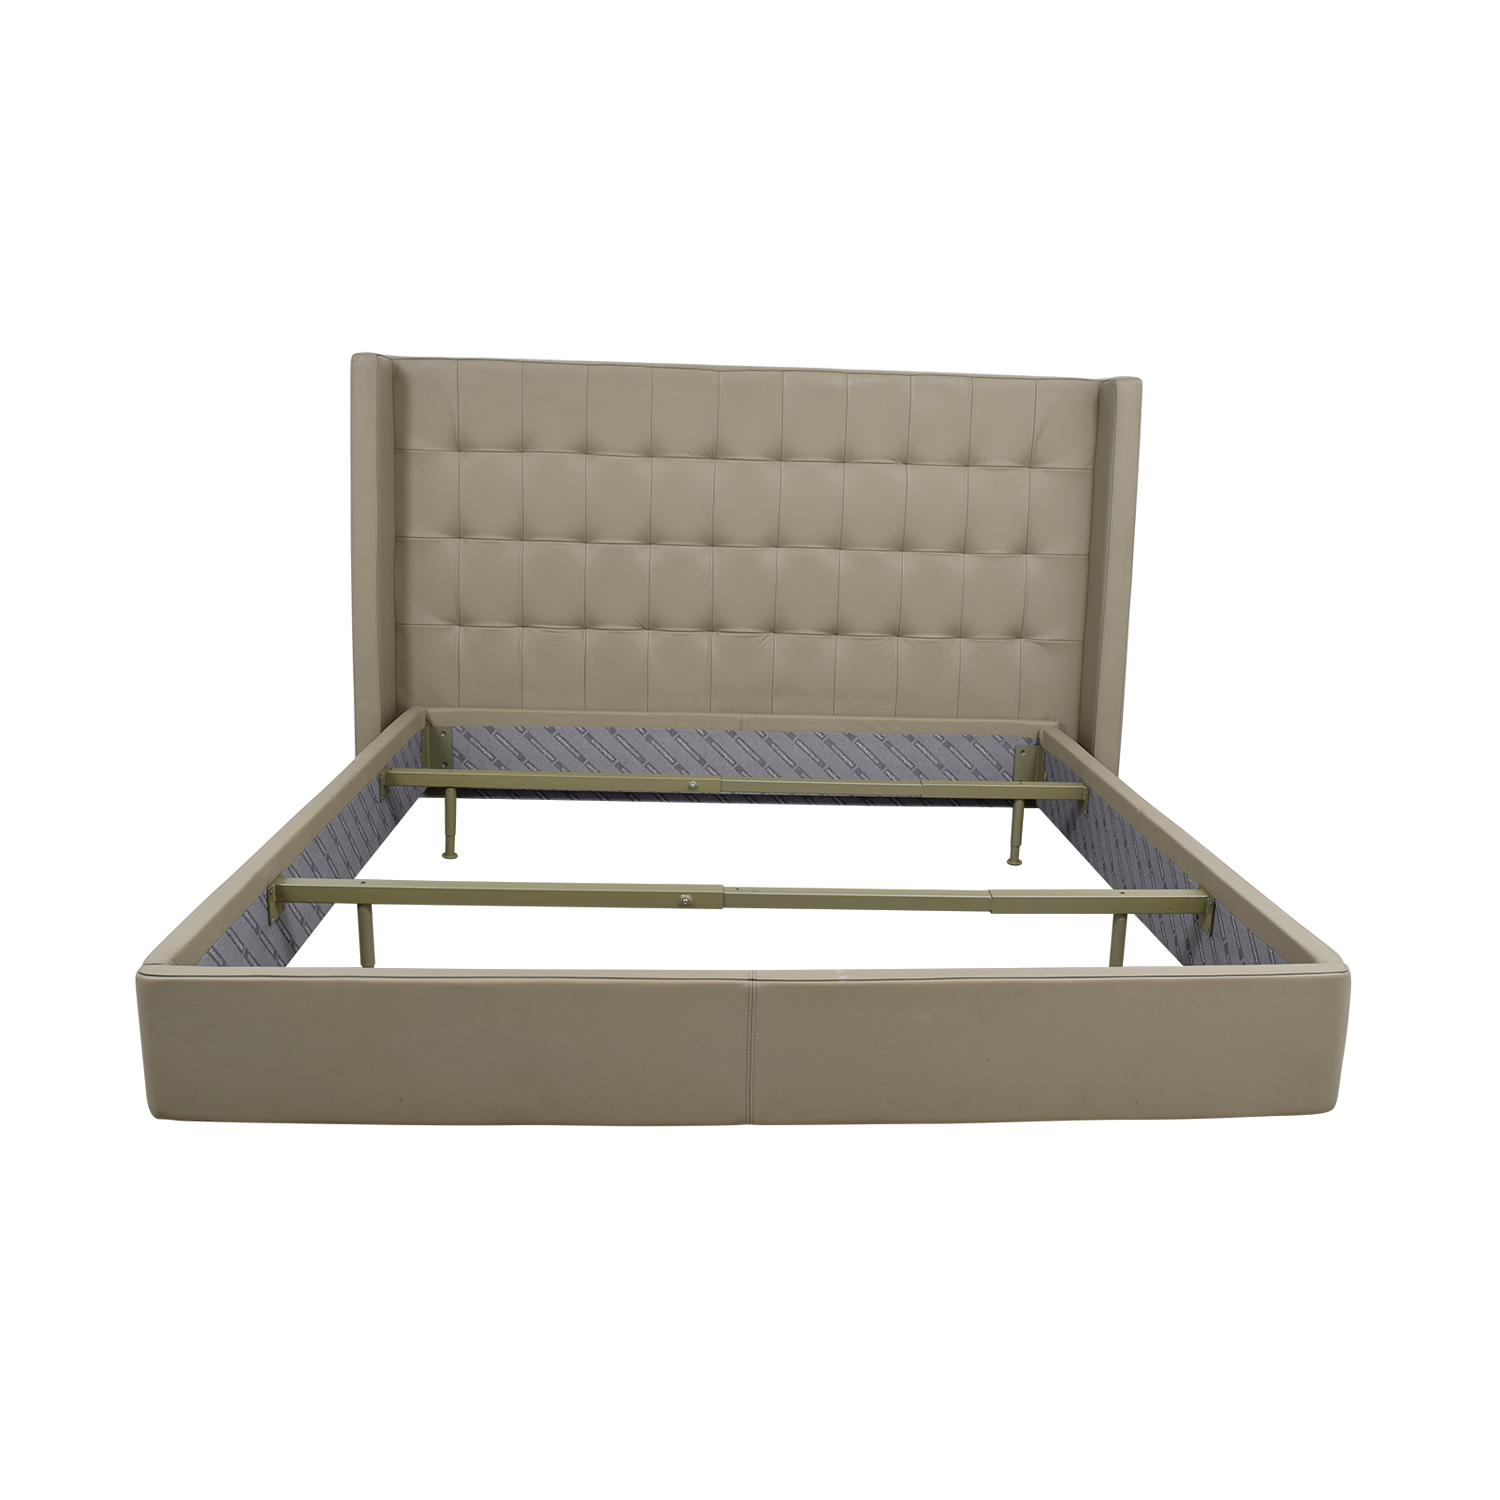 Roche Bobois Roche Bobois King Beige Tufted Leather Bed Frame Beds